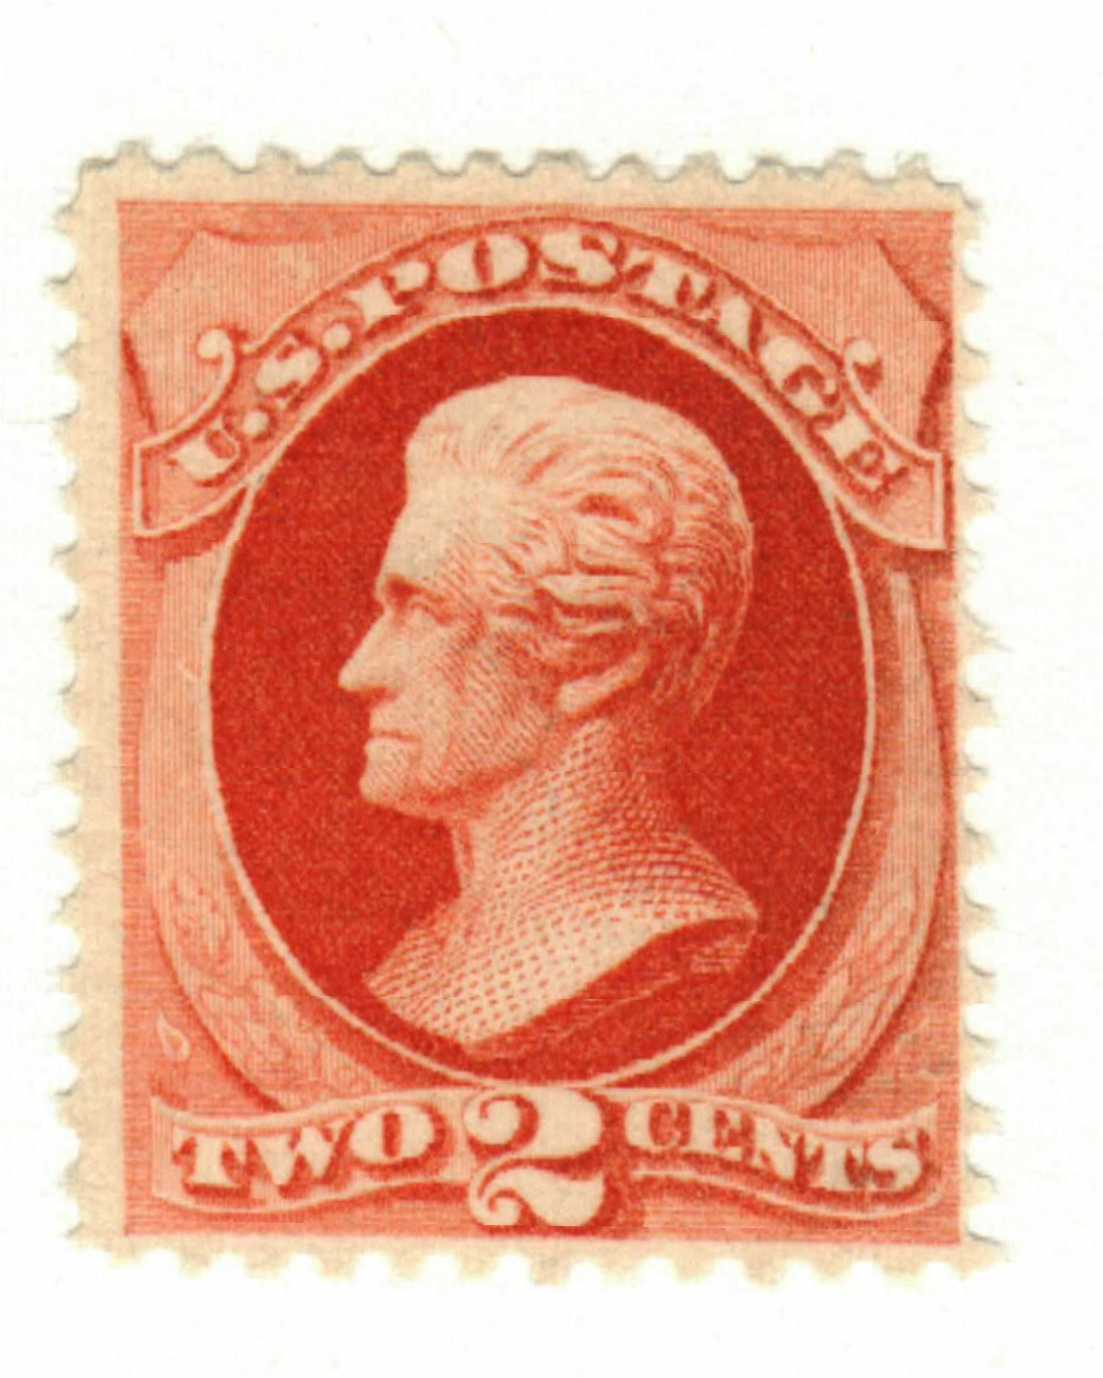 1879 2c Andrew Jackson Vermilion For Sale At Mystic Stamp Company